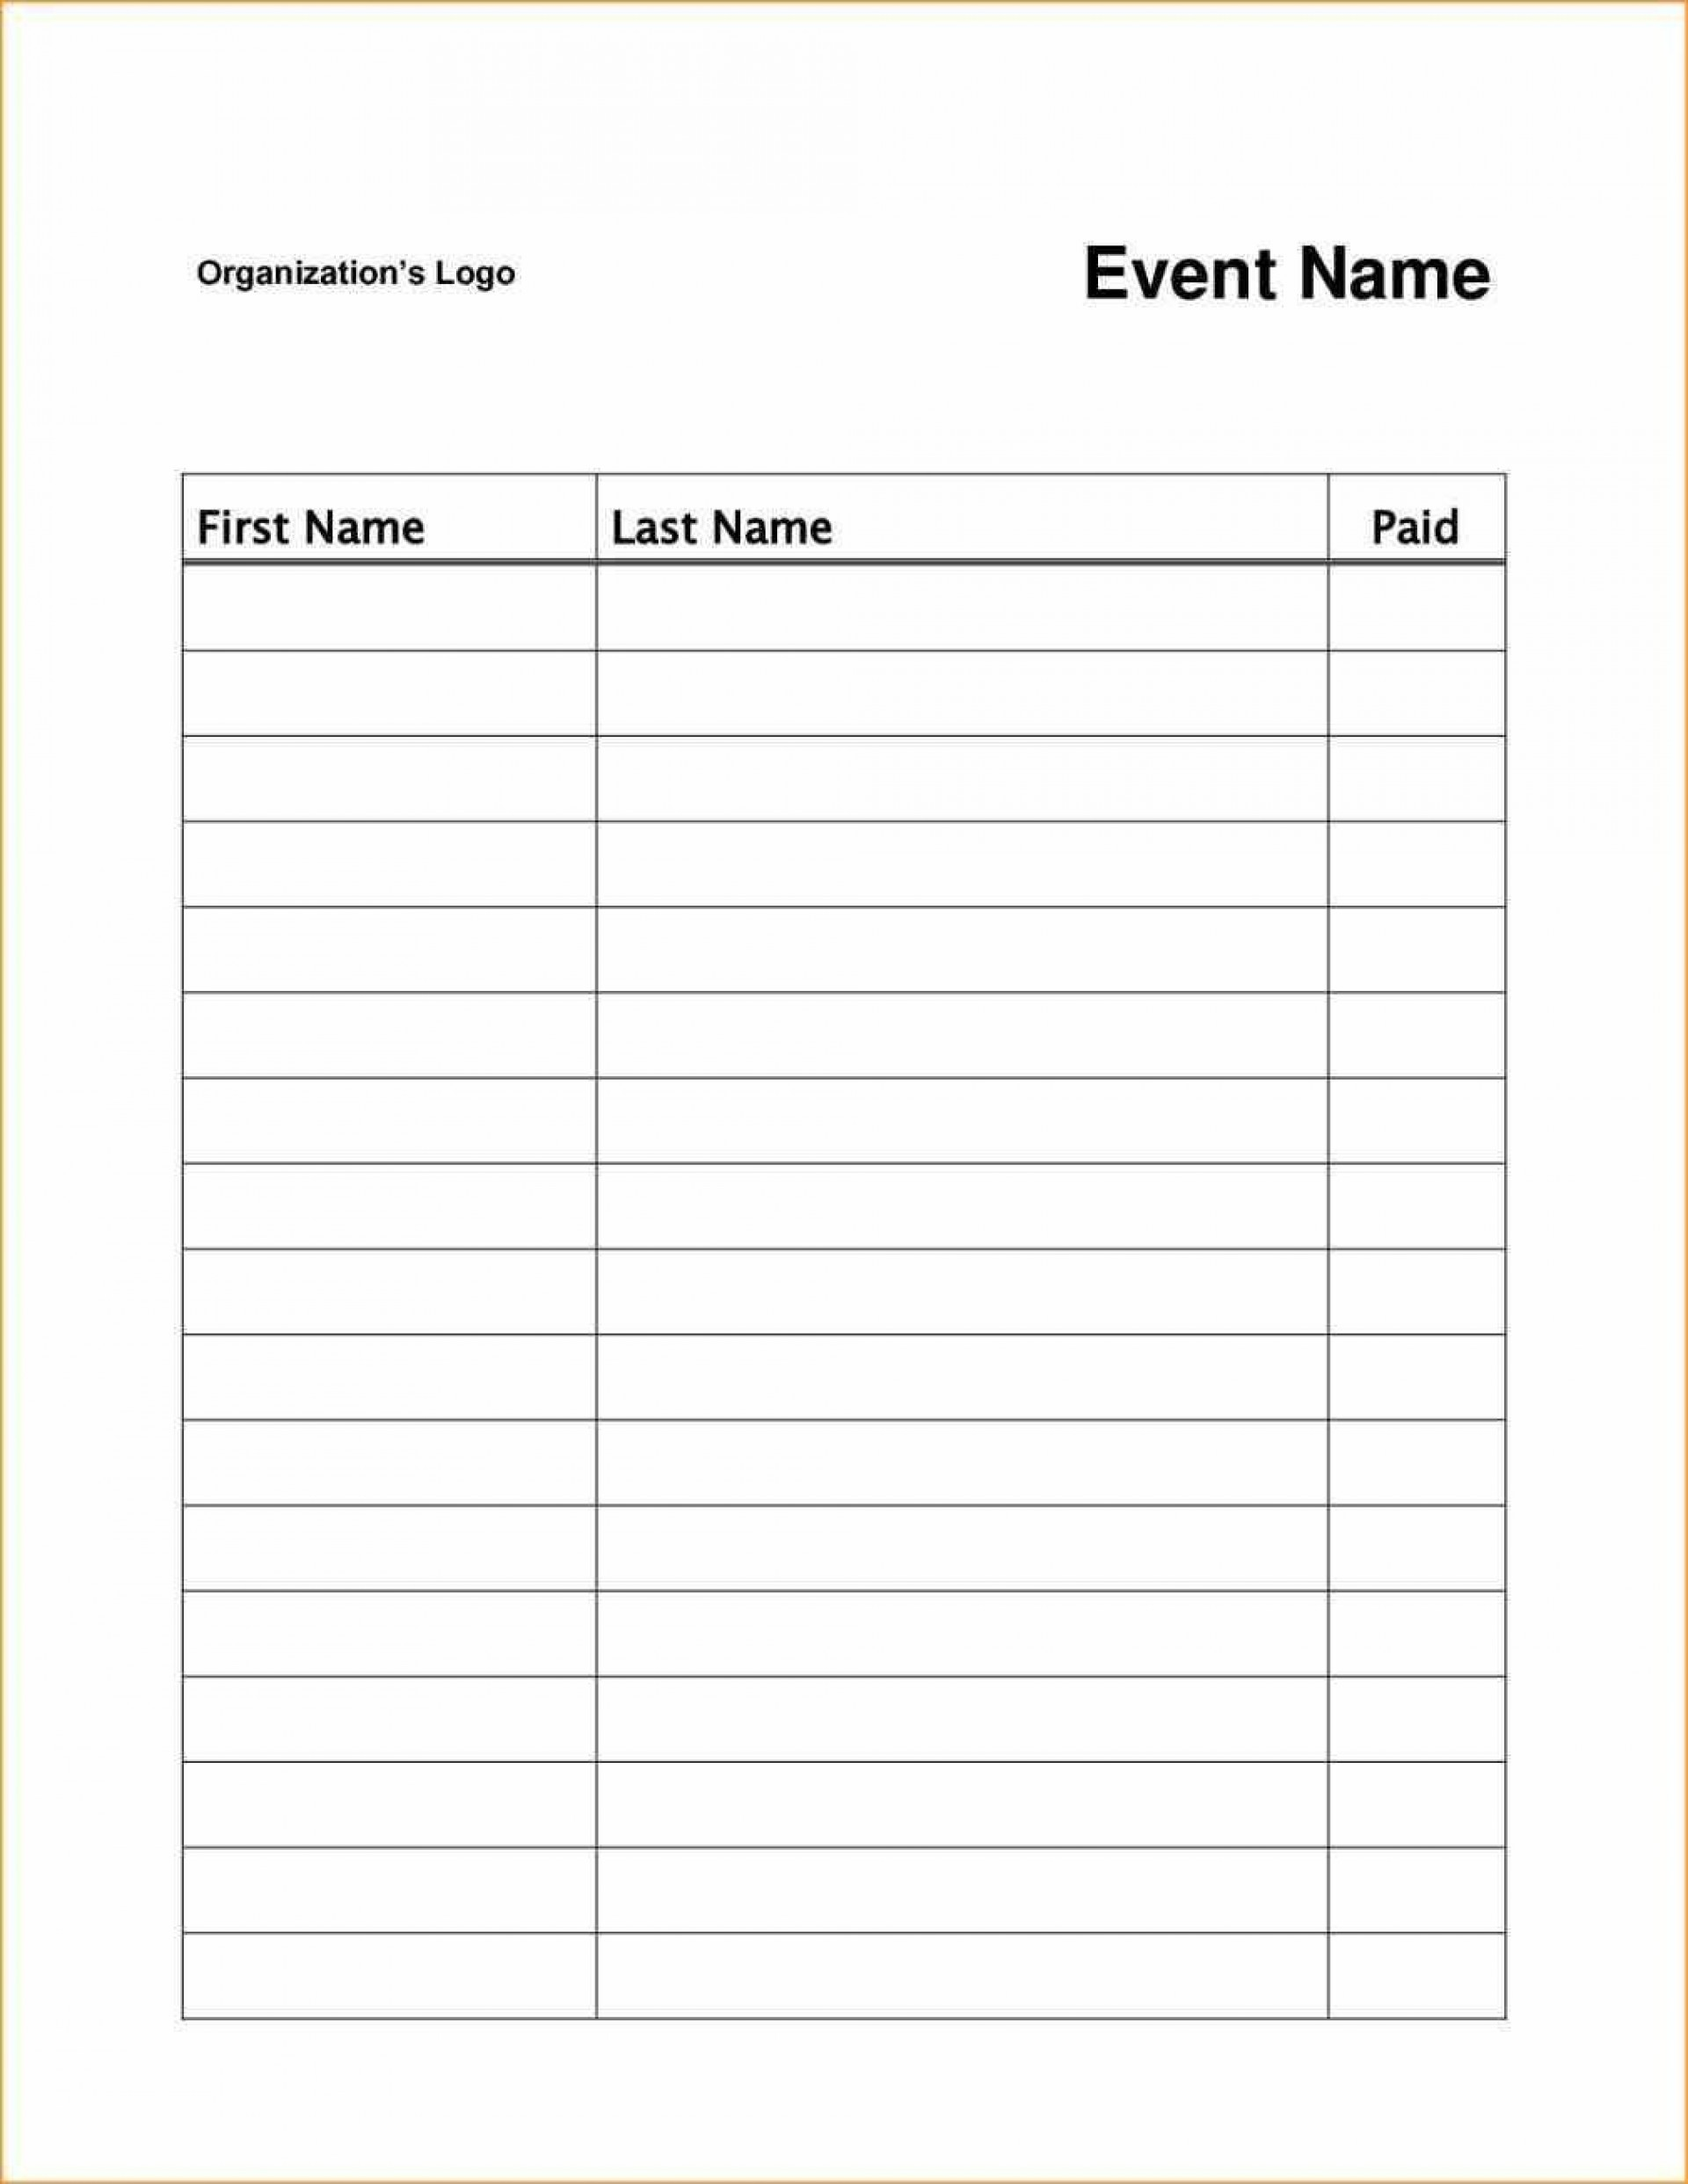 003 Magnificent Sign Up Sheet Template High Resolution  Volunteer In Word Work1920